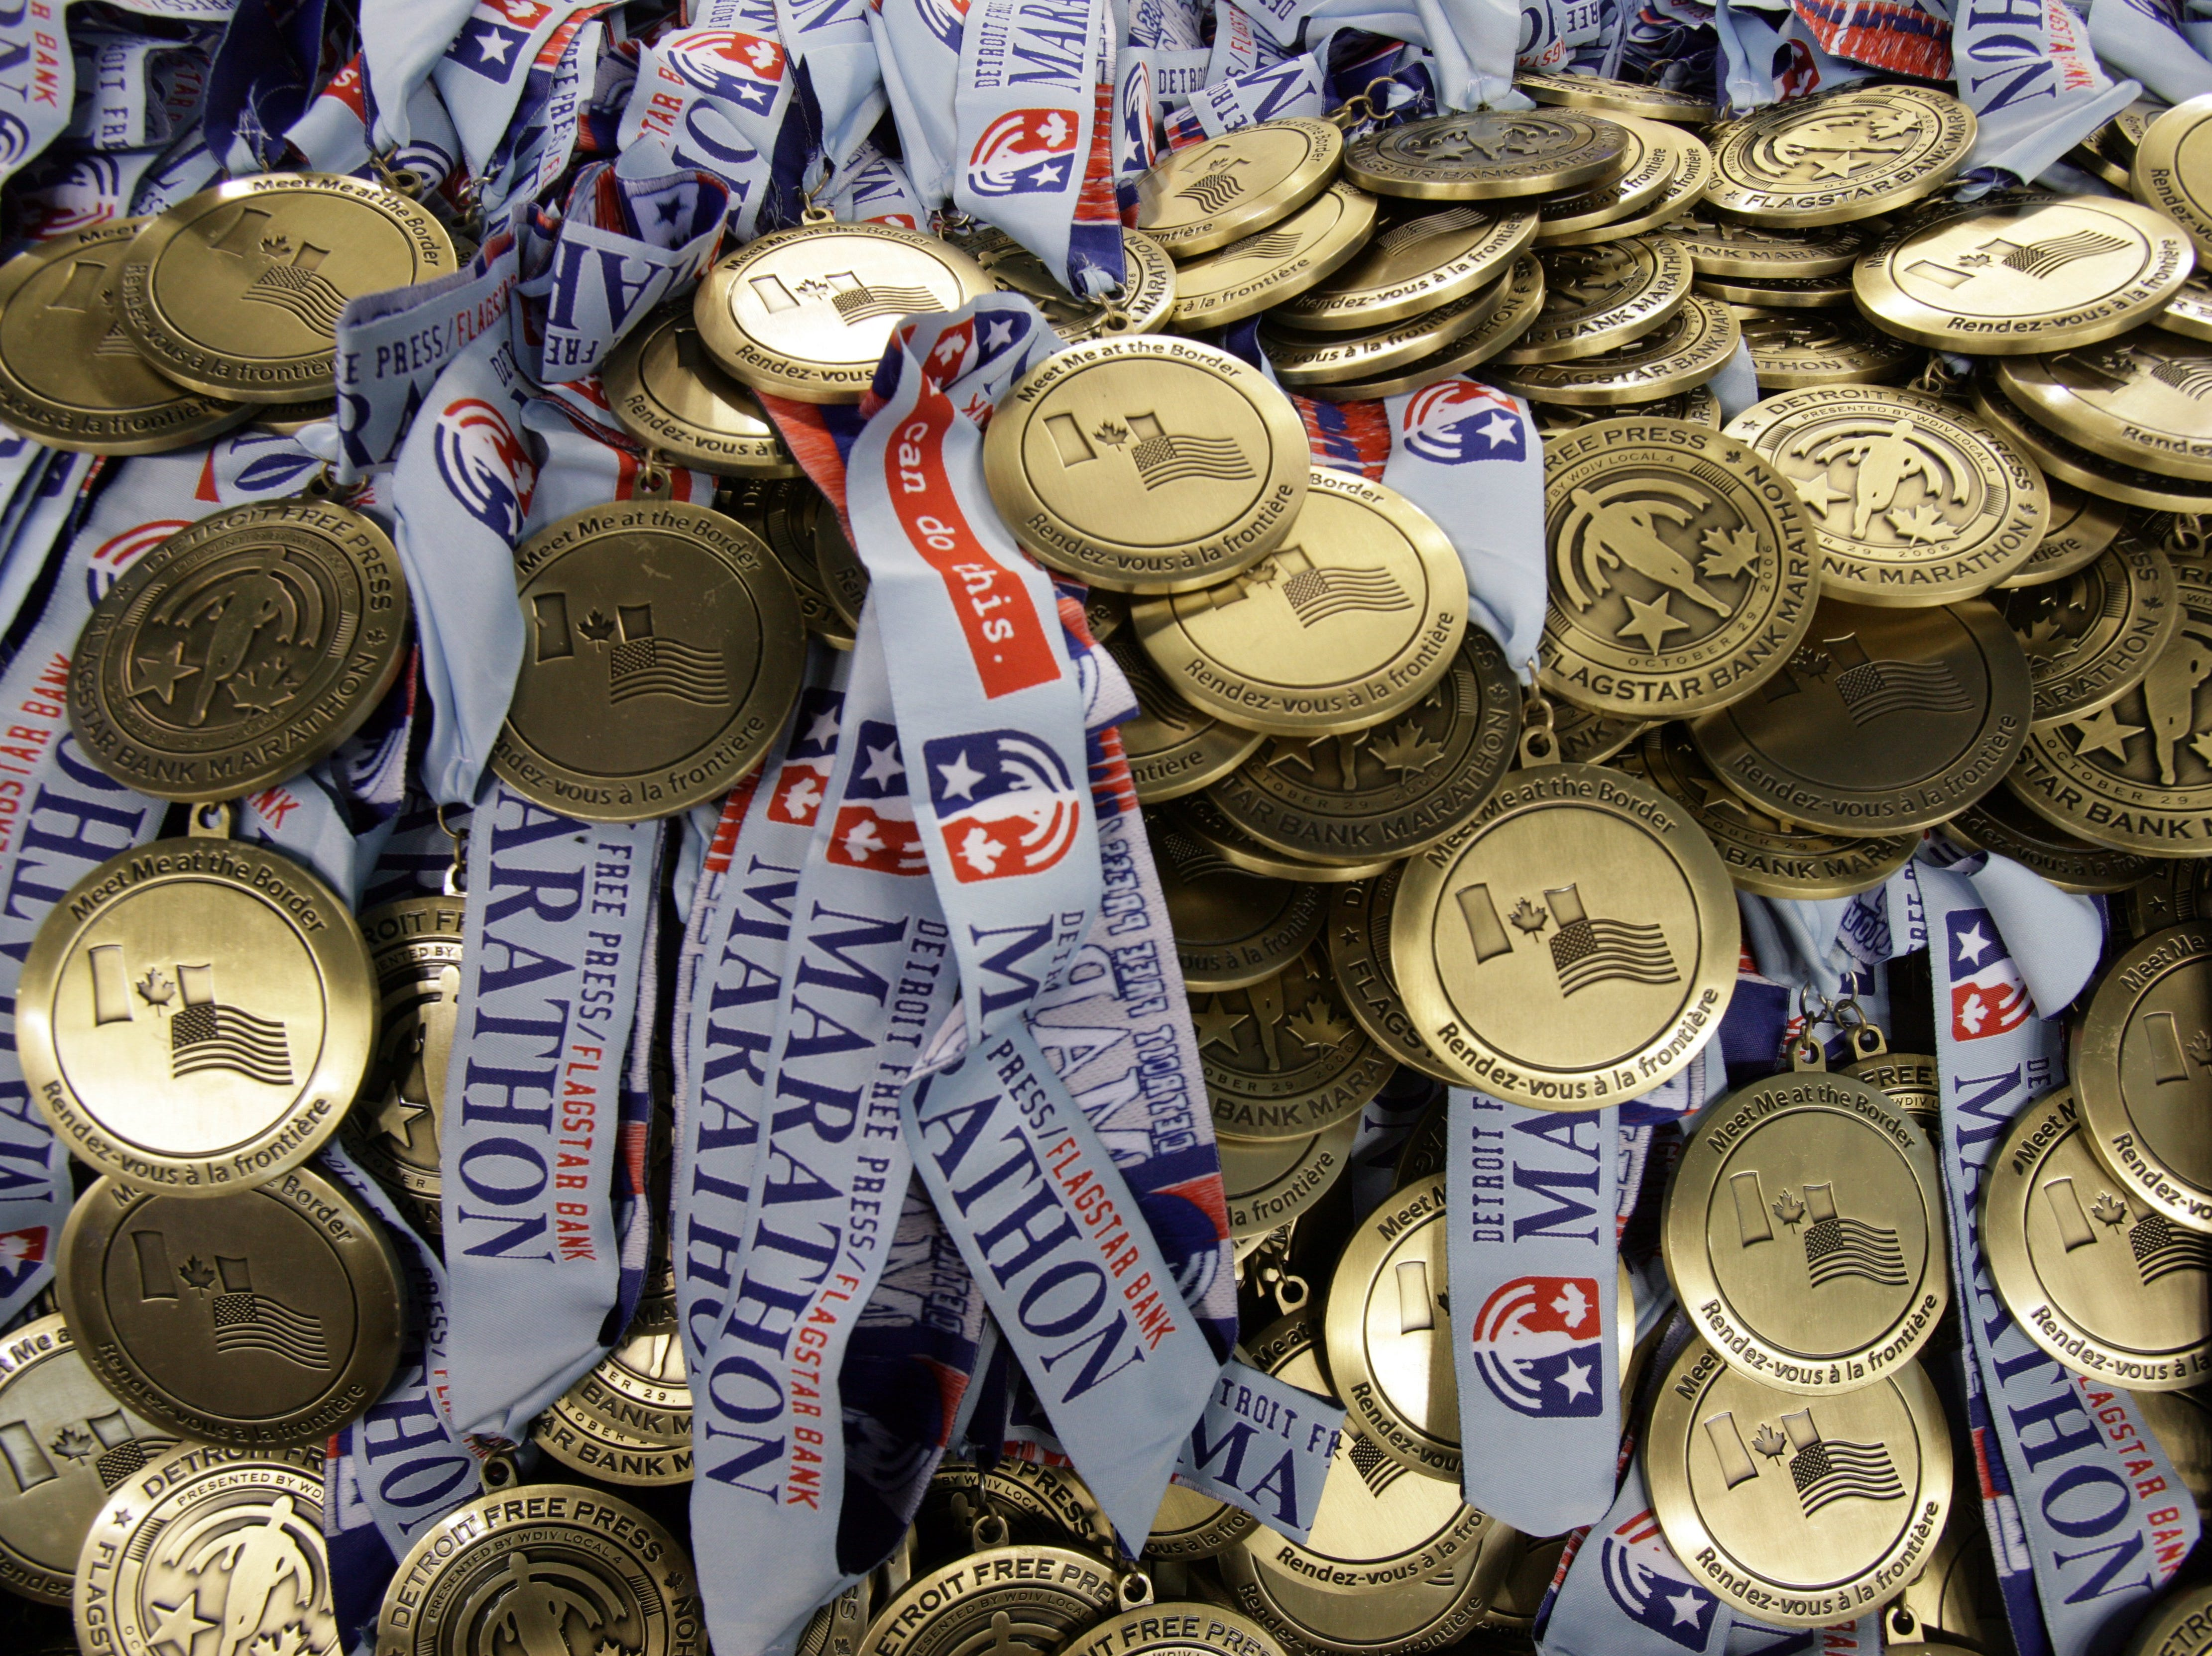 piles of medals wait for thier runners at Ford Field in Detroit during the Detroit Free Press Marathon on Sunday, October 29, 2006.